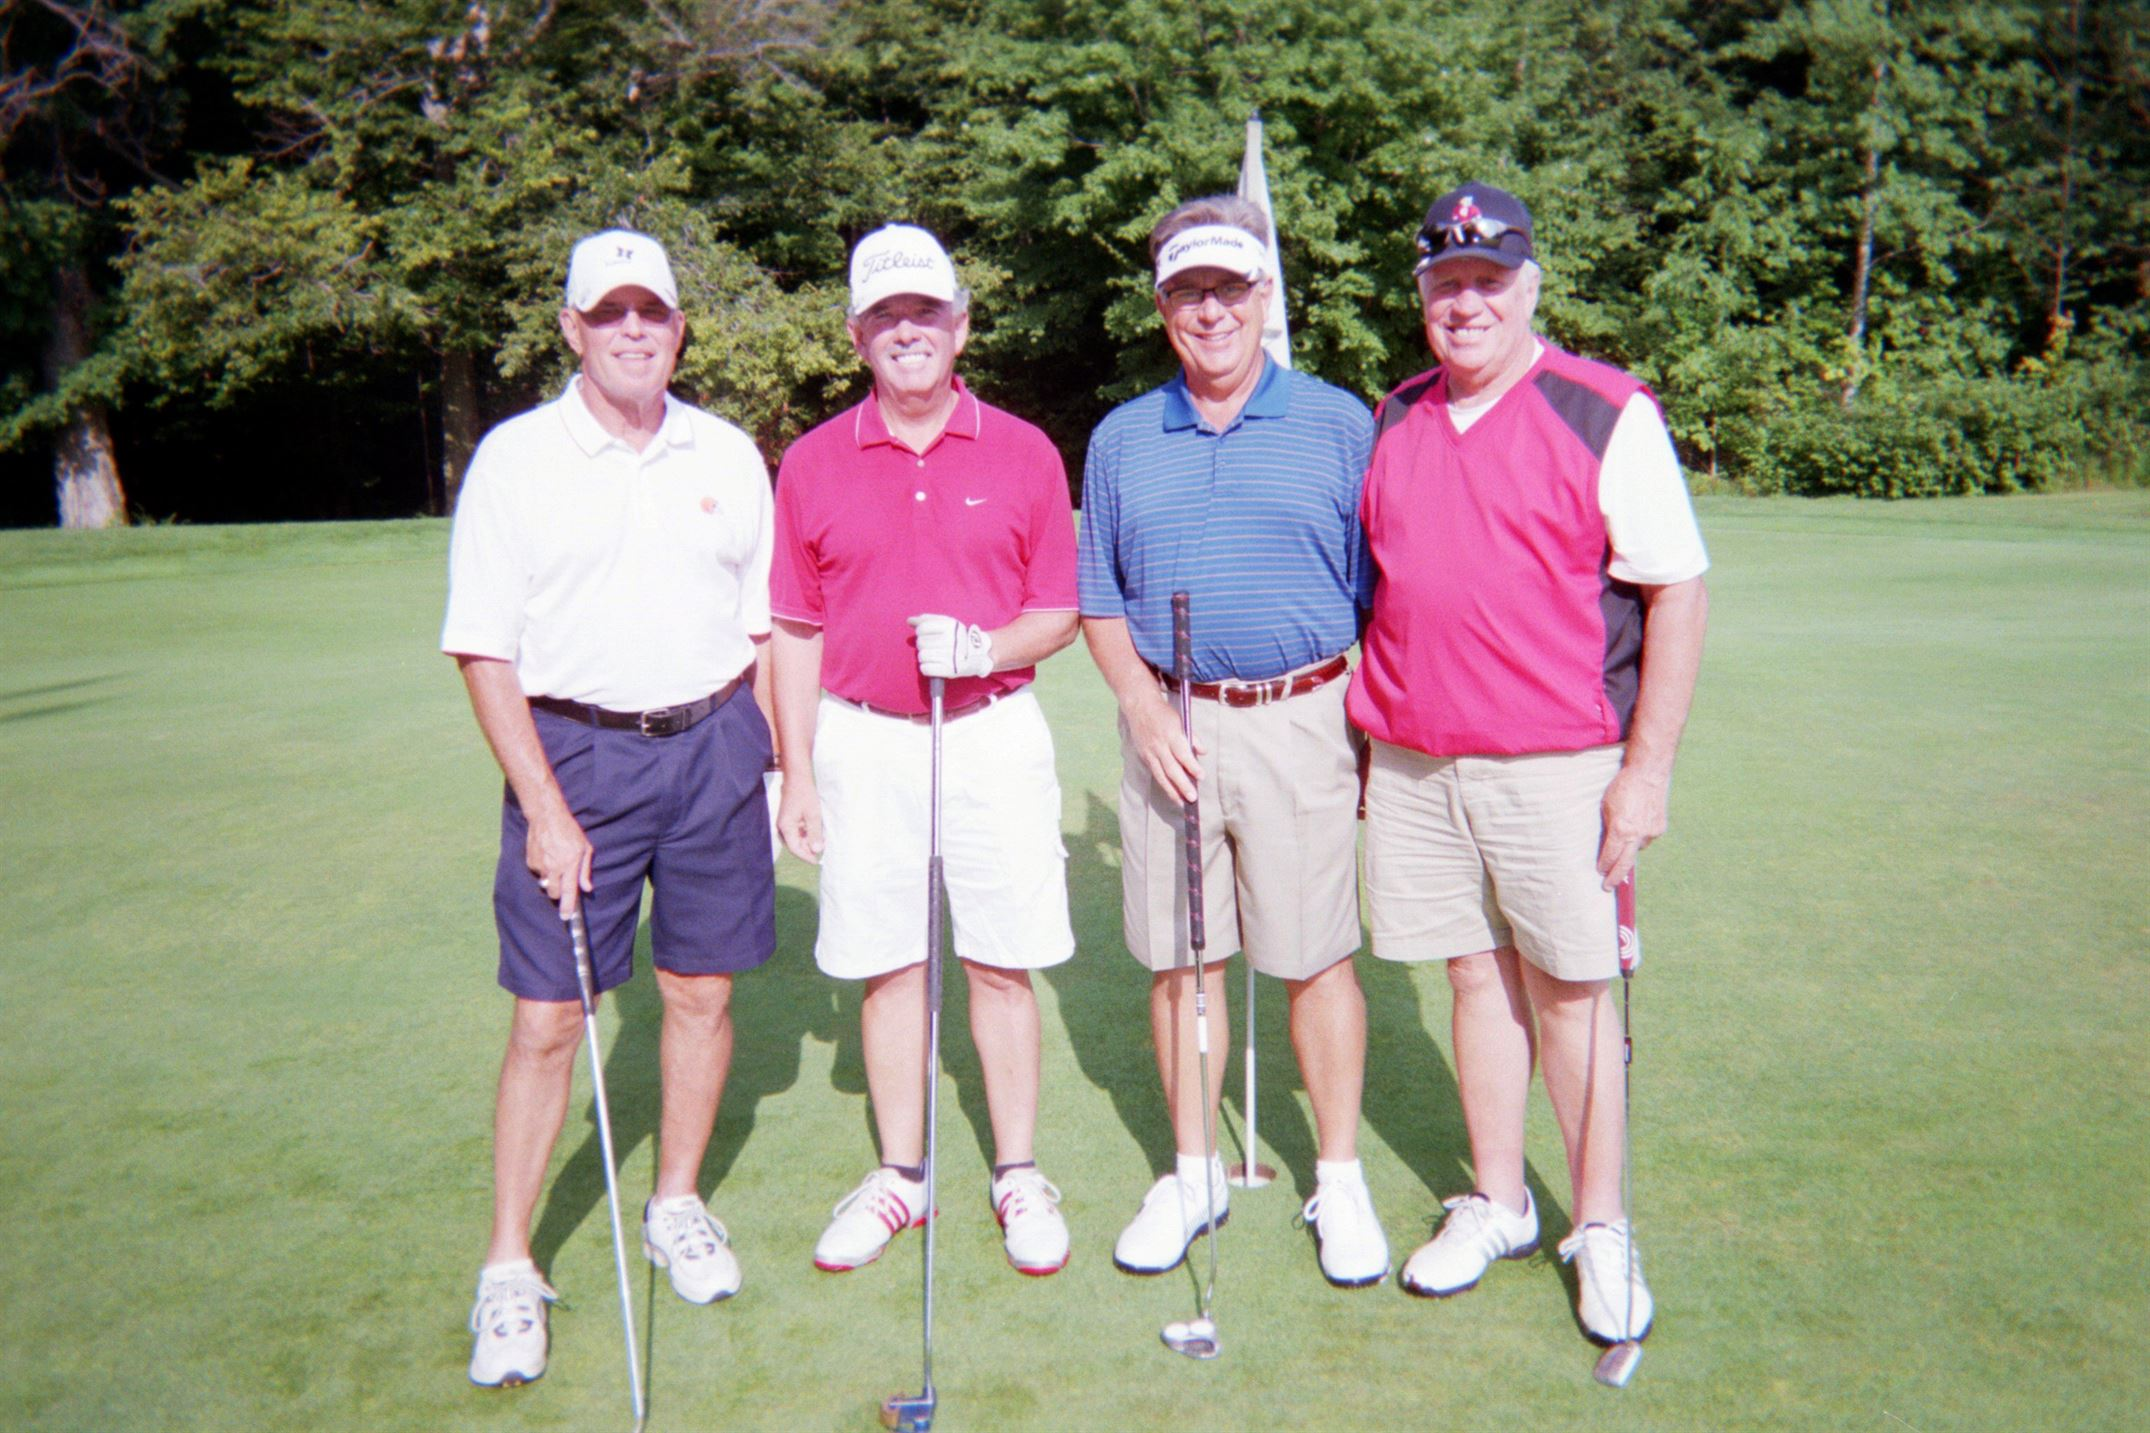 Bill Portz, Mitch Henn, Dave Zappitelli, Dan Whitmire